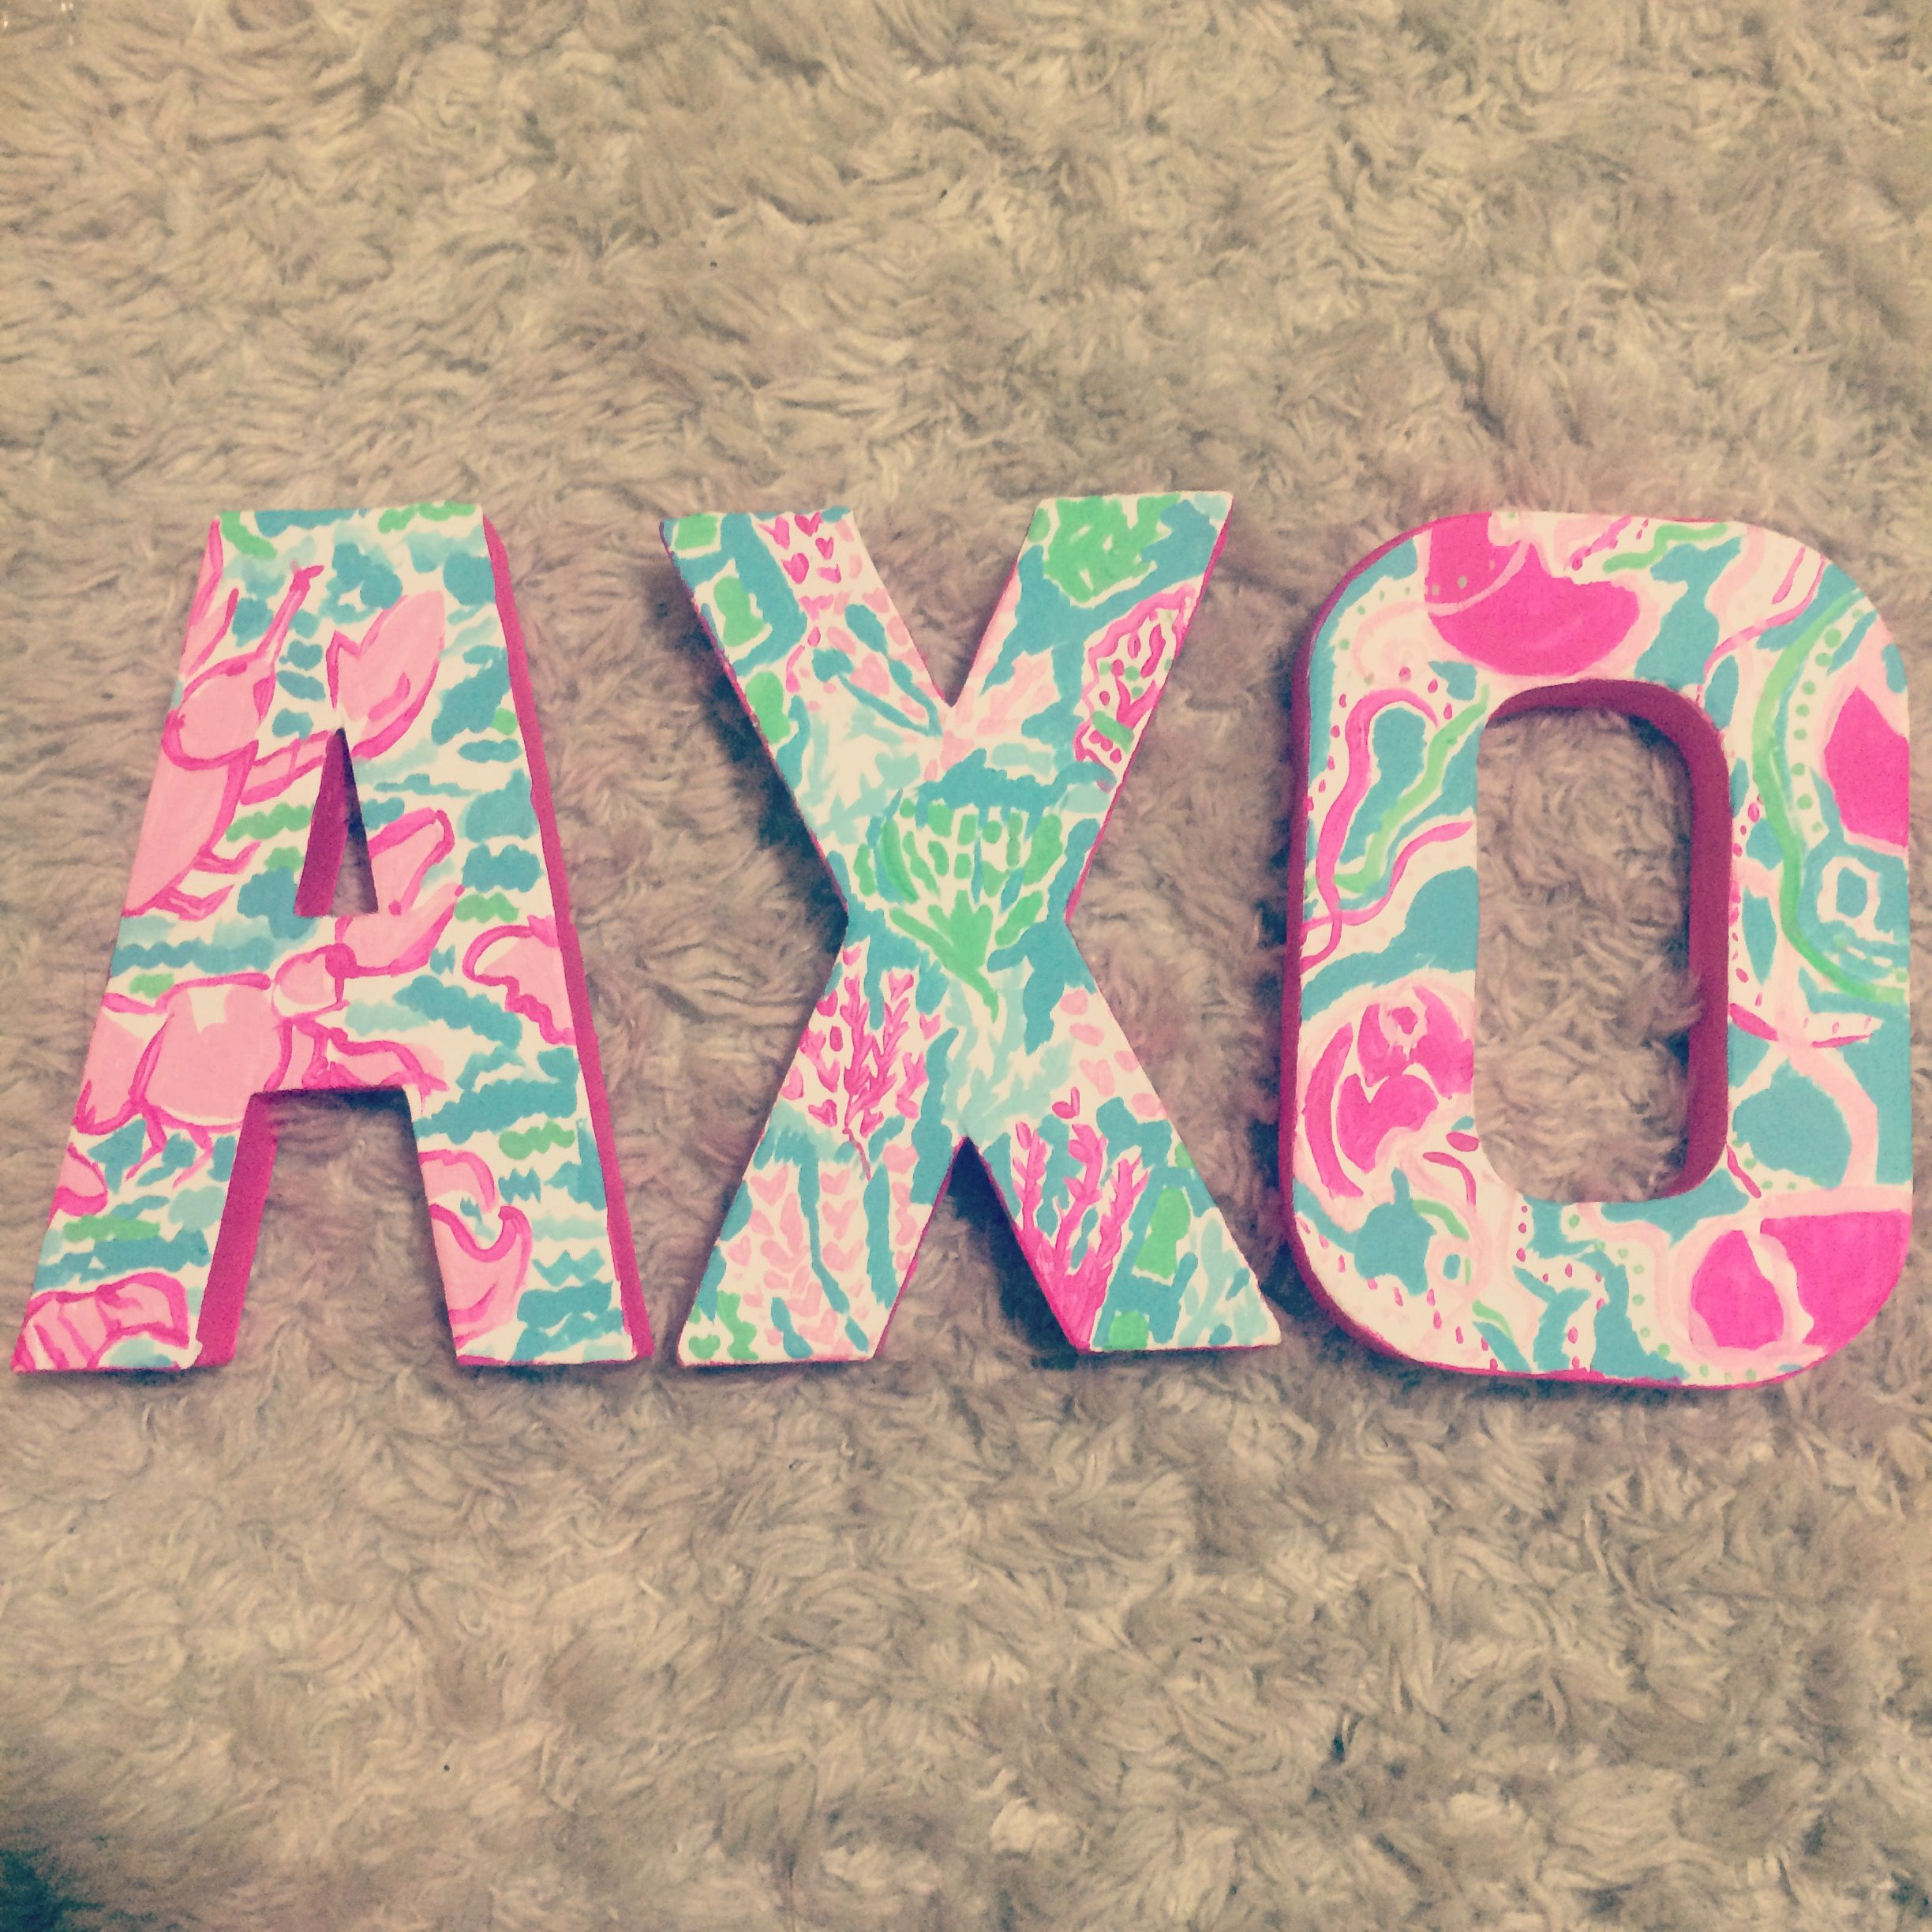 alpha chi omega painted lilly pulitzer sorority letters three prints all in the same colors